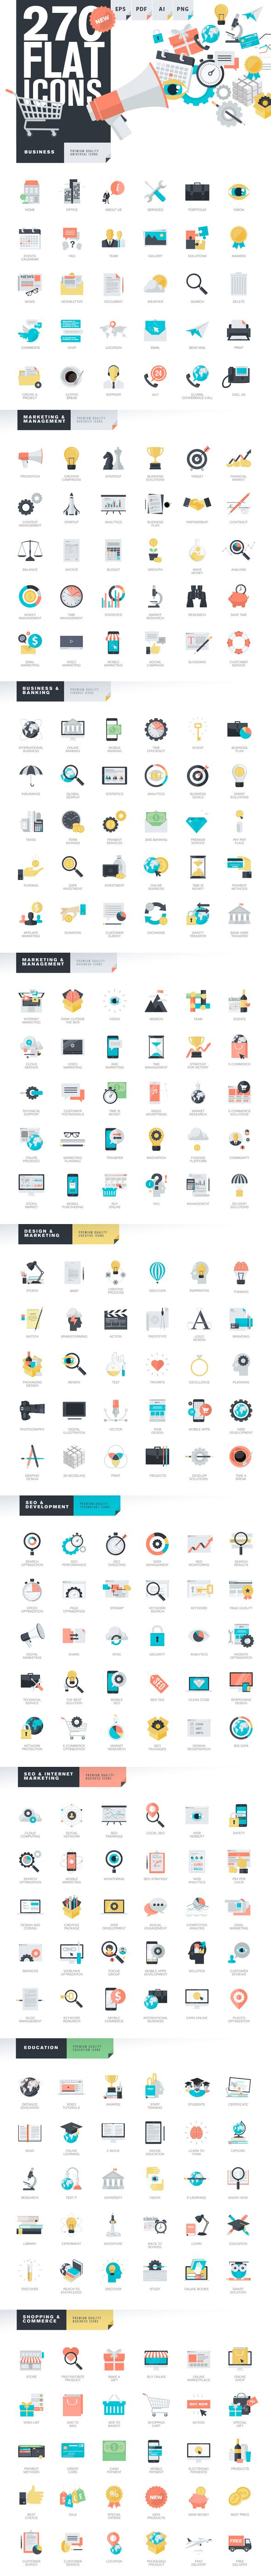 Modern Flat Design Style Icons by PureSolution on Creative Market